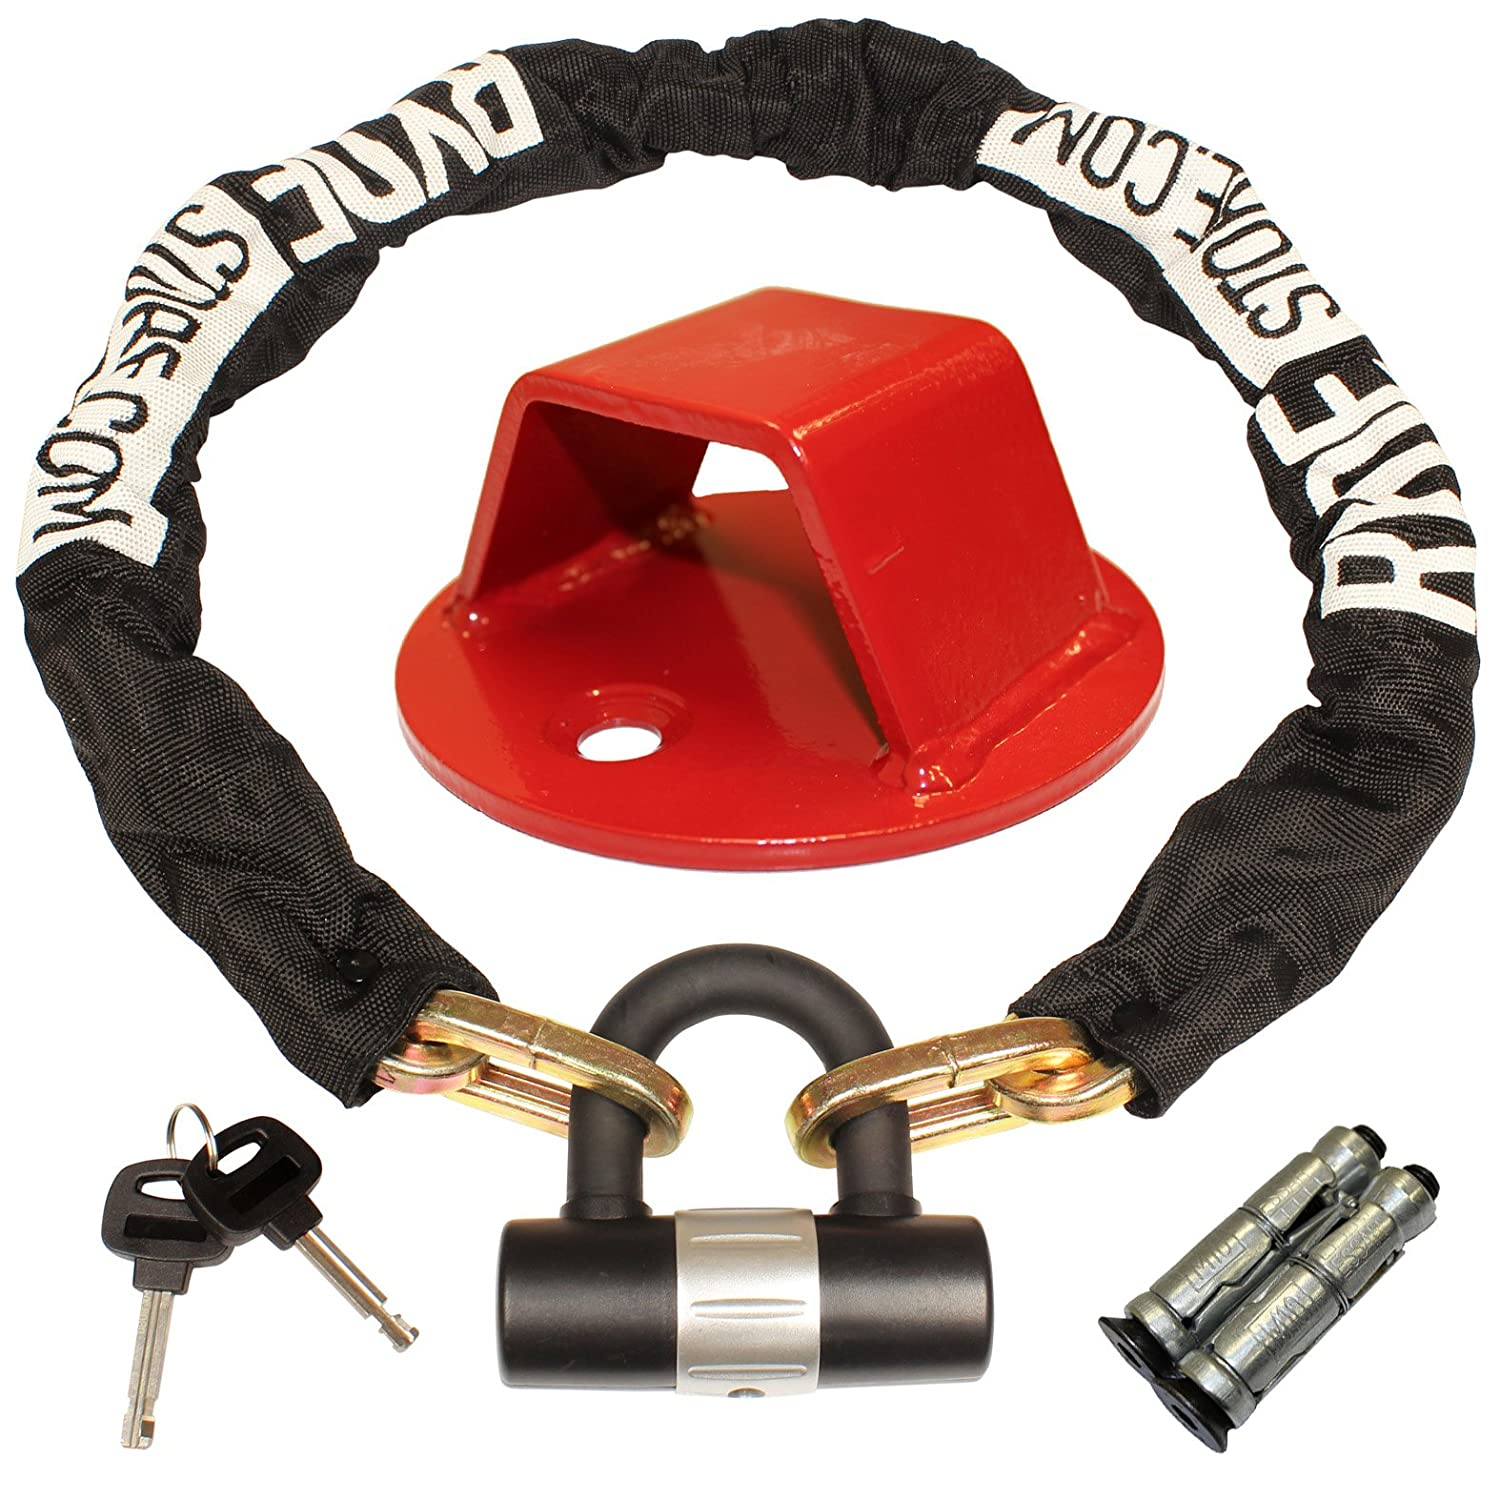 Ryde 1m Heavy Duty Motorcycle Chain & D Lock with Red Ground Anchor